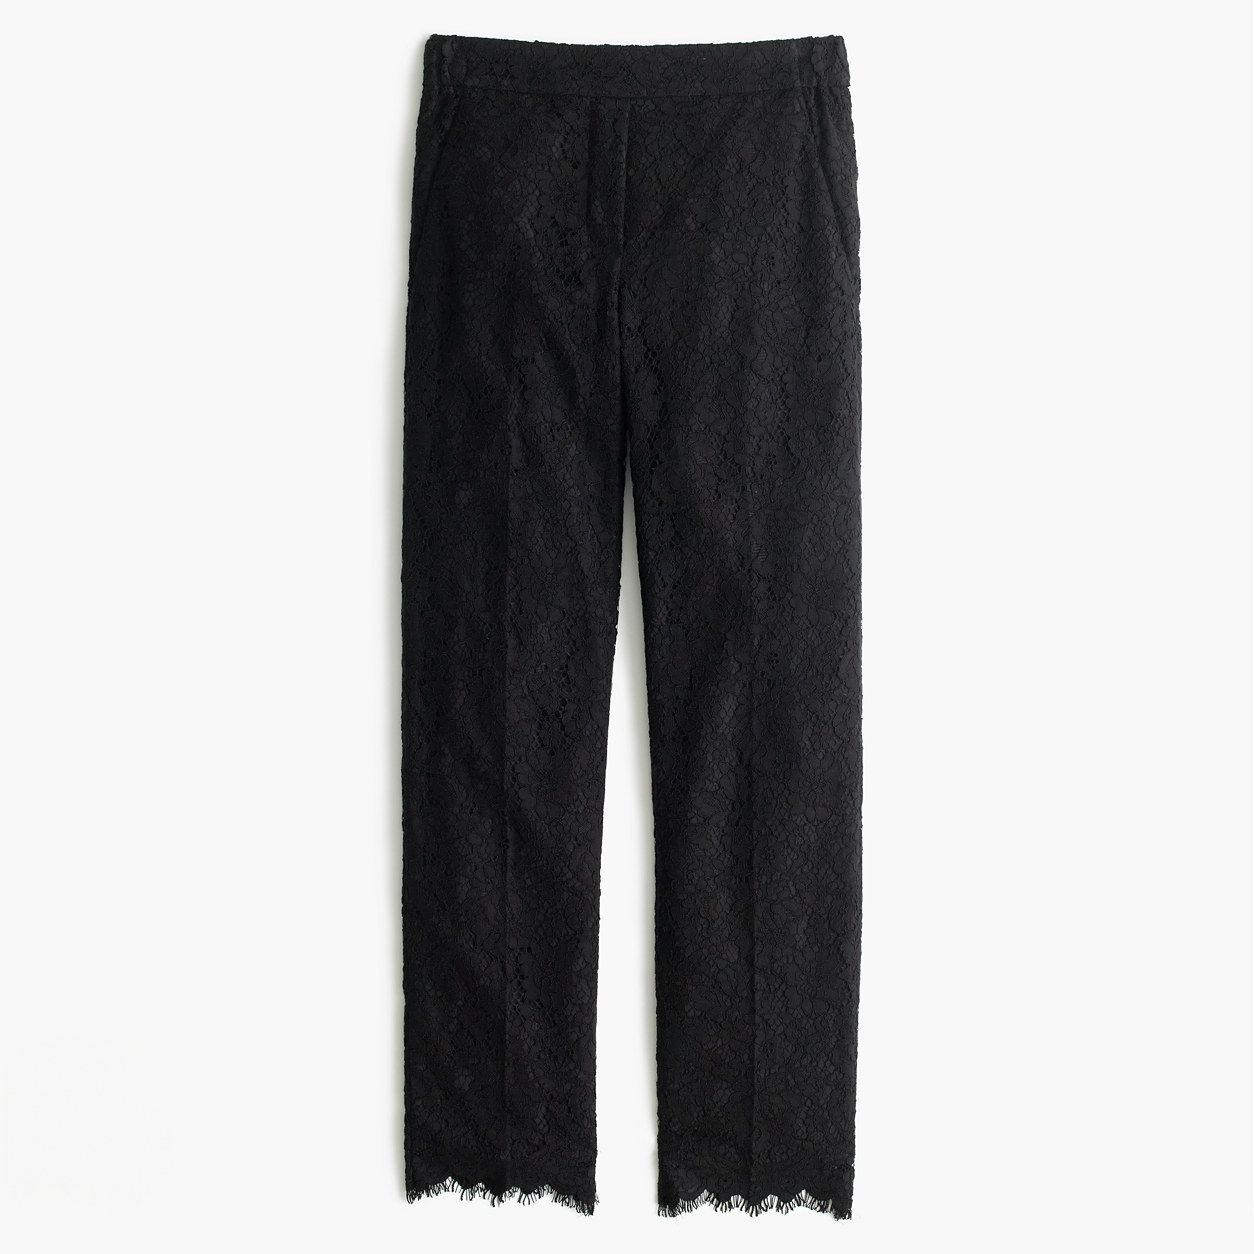 9716a2f1 J.Crew Womens Petite Easy Pant In Lace (Size 10 Petite)   Products ...